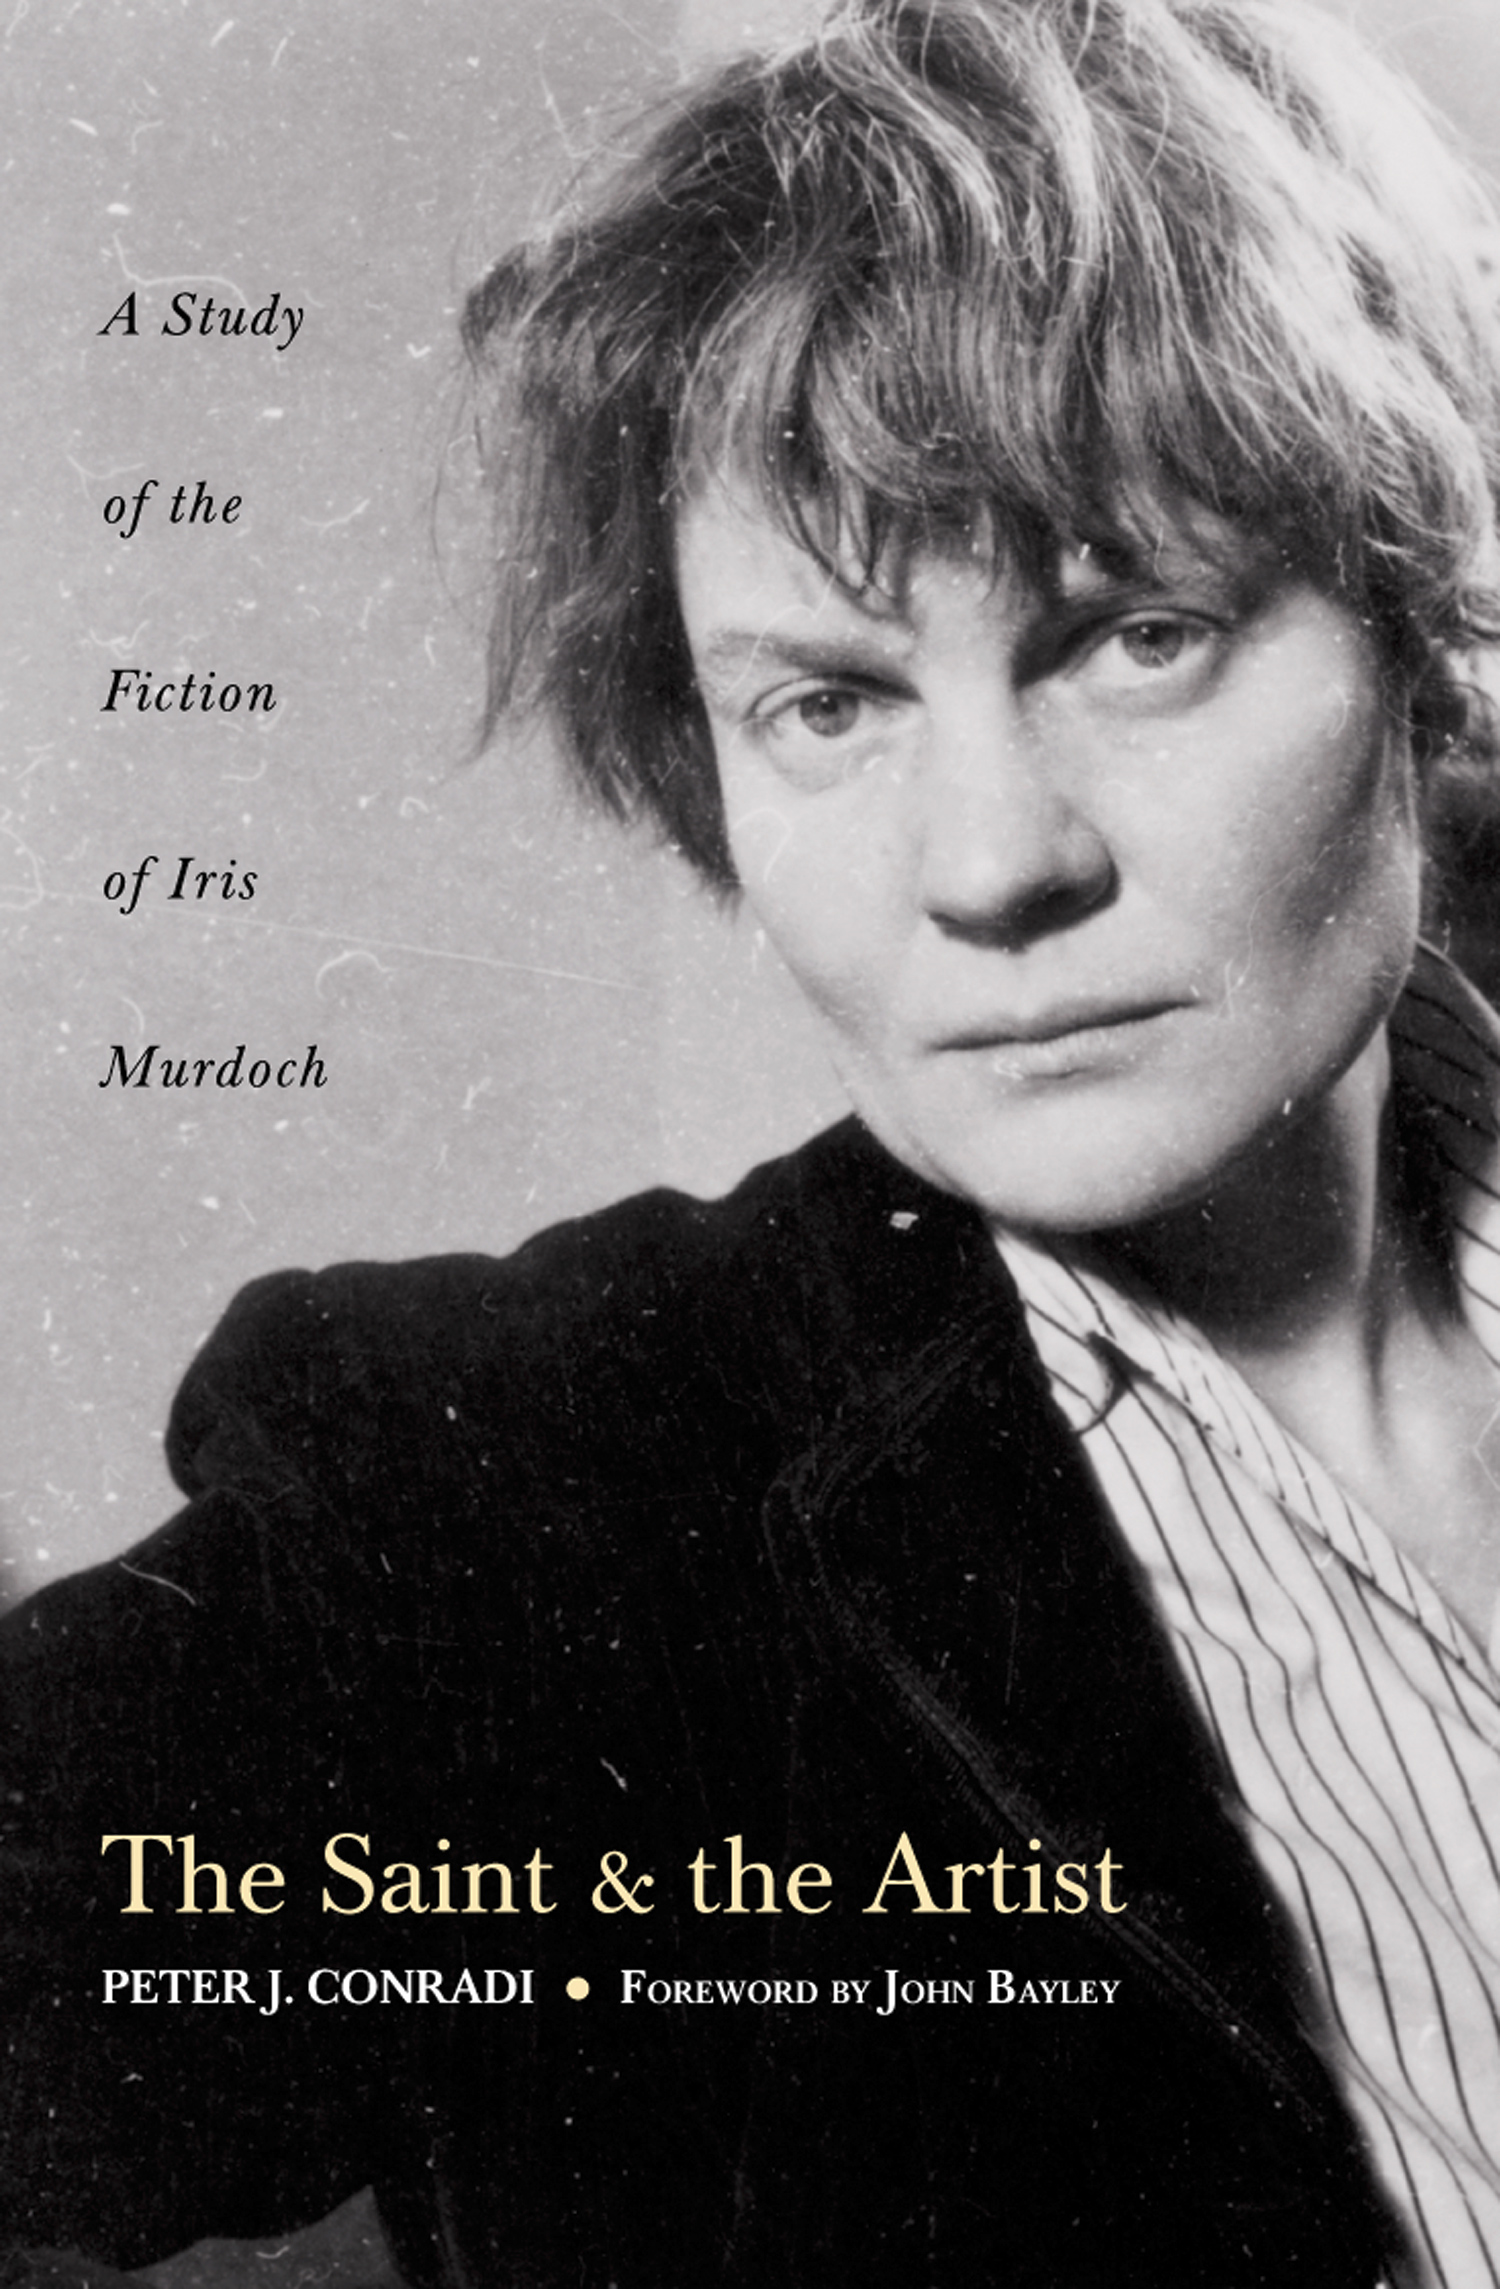 The Saint and Artist: A Study of the Fiction of Iris Murdoch